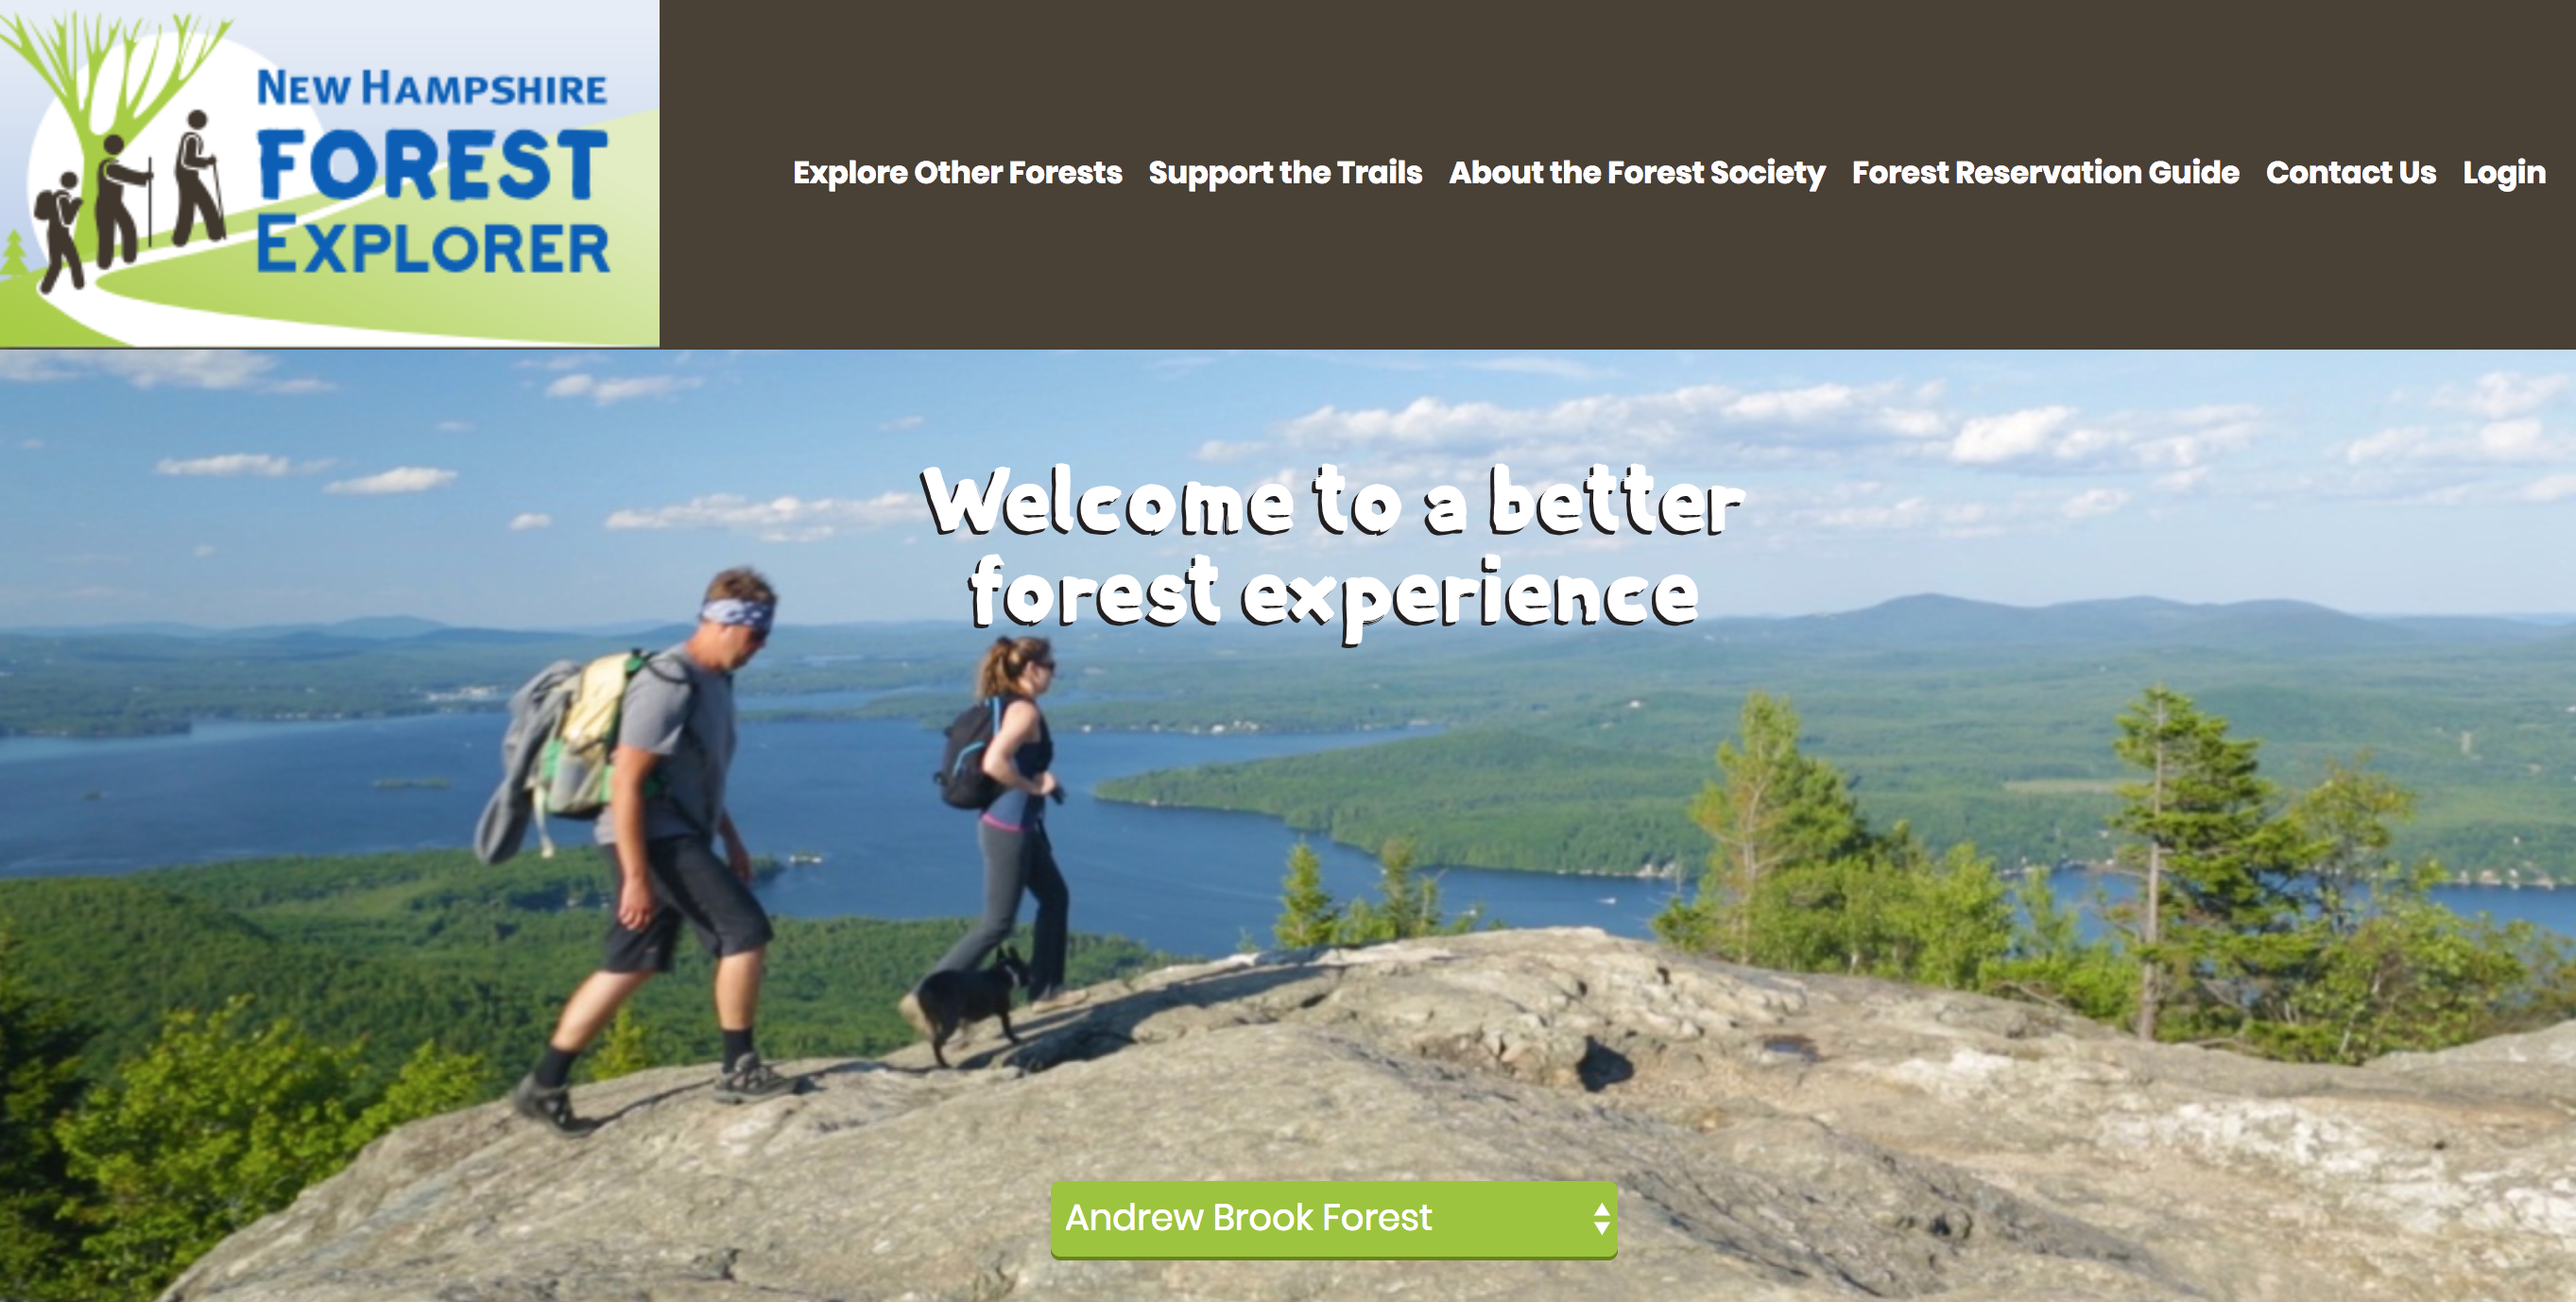 Forest Explorer App from the Society for the Protection of New Hampshire Forests image